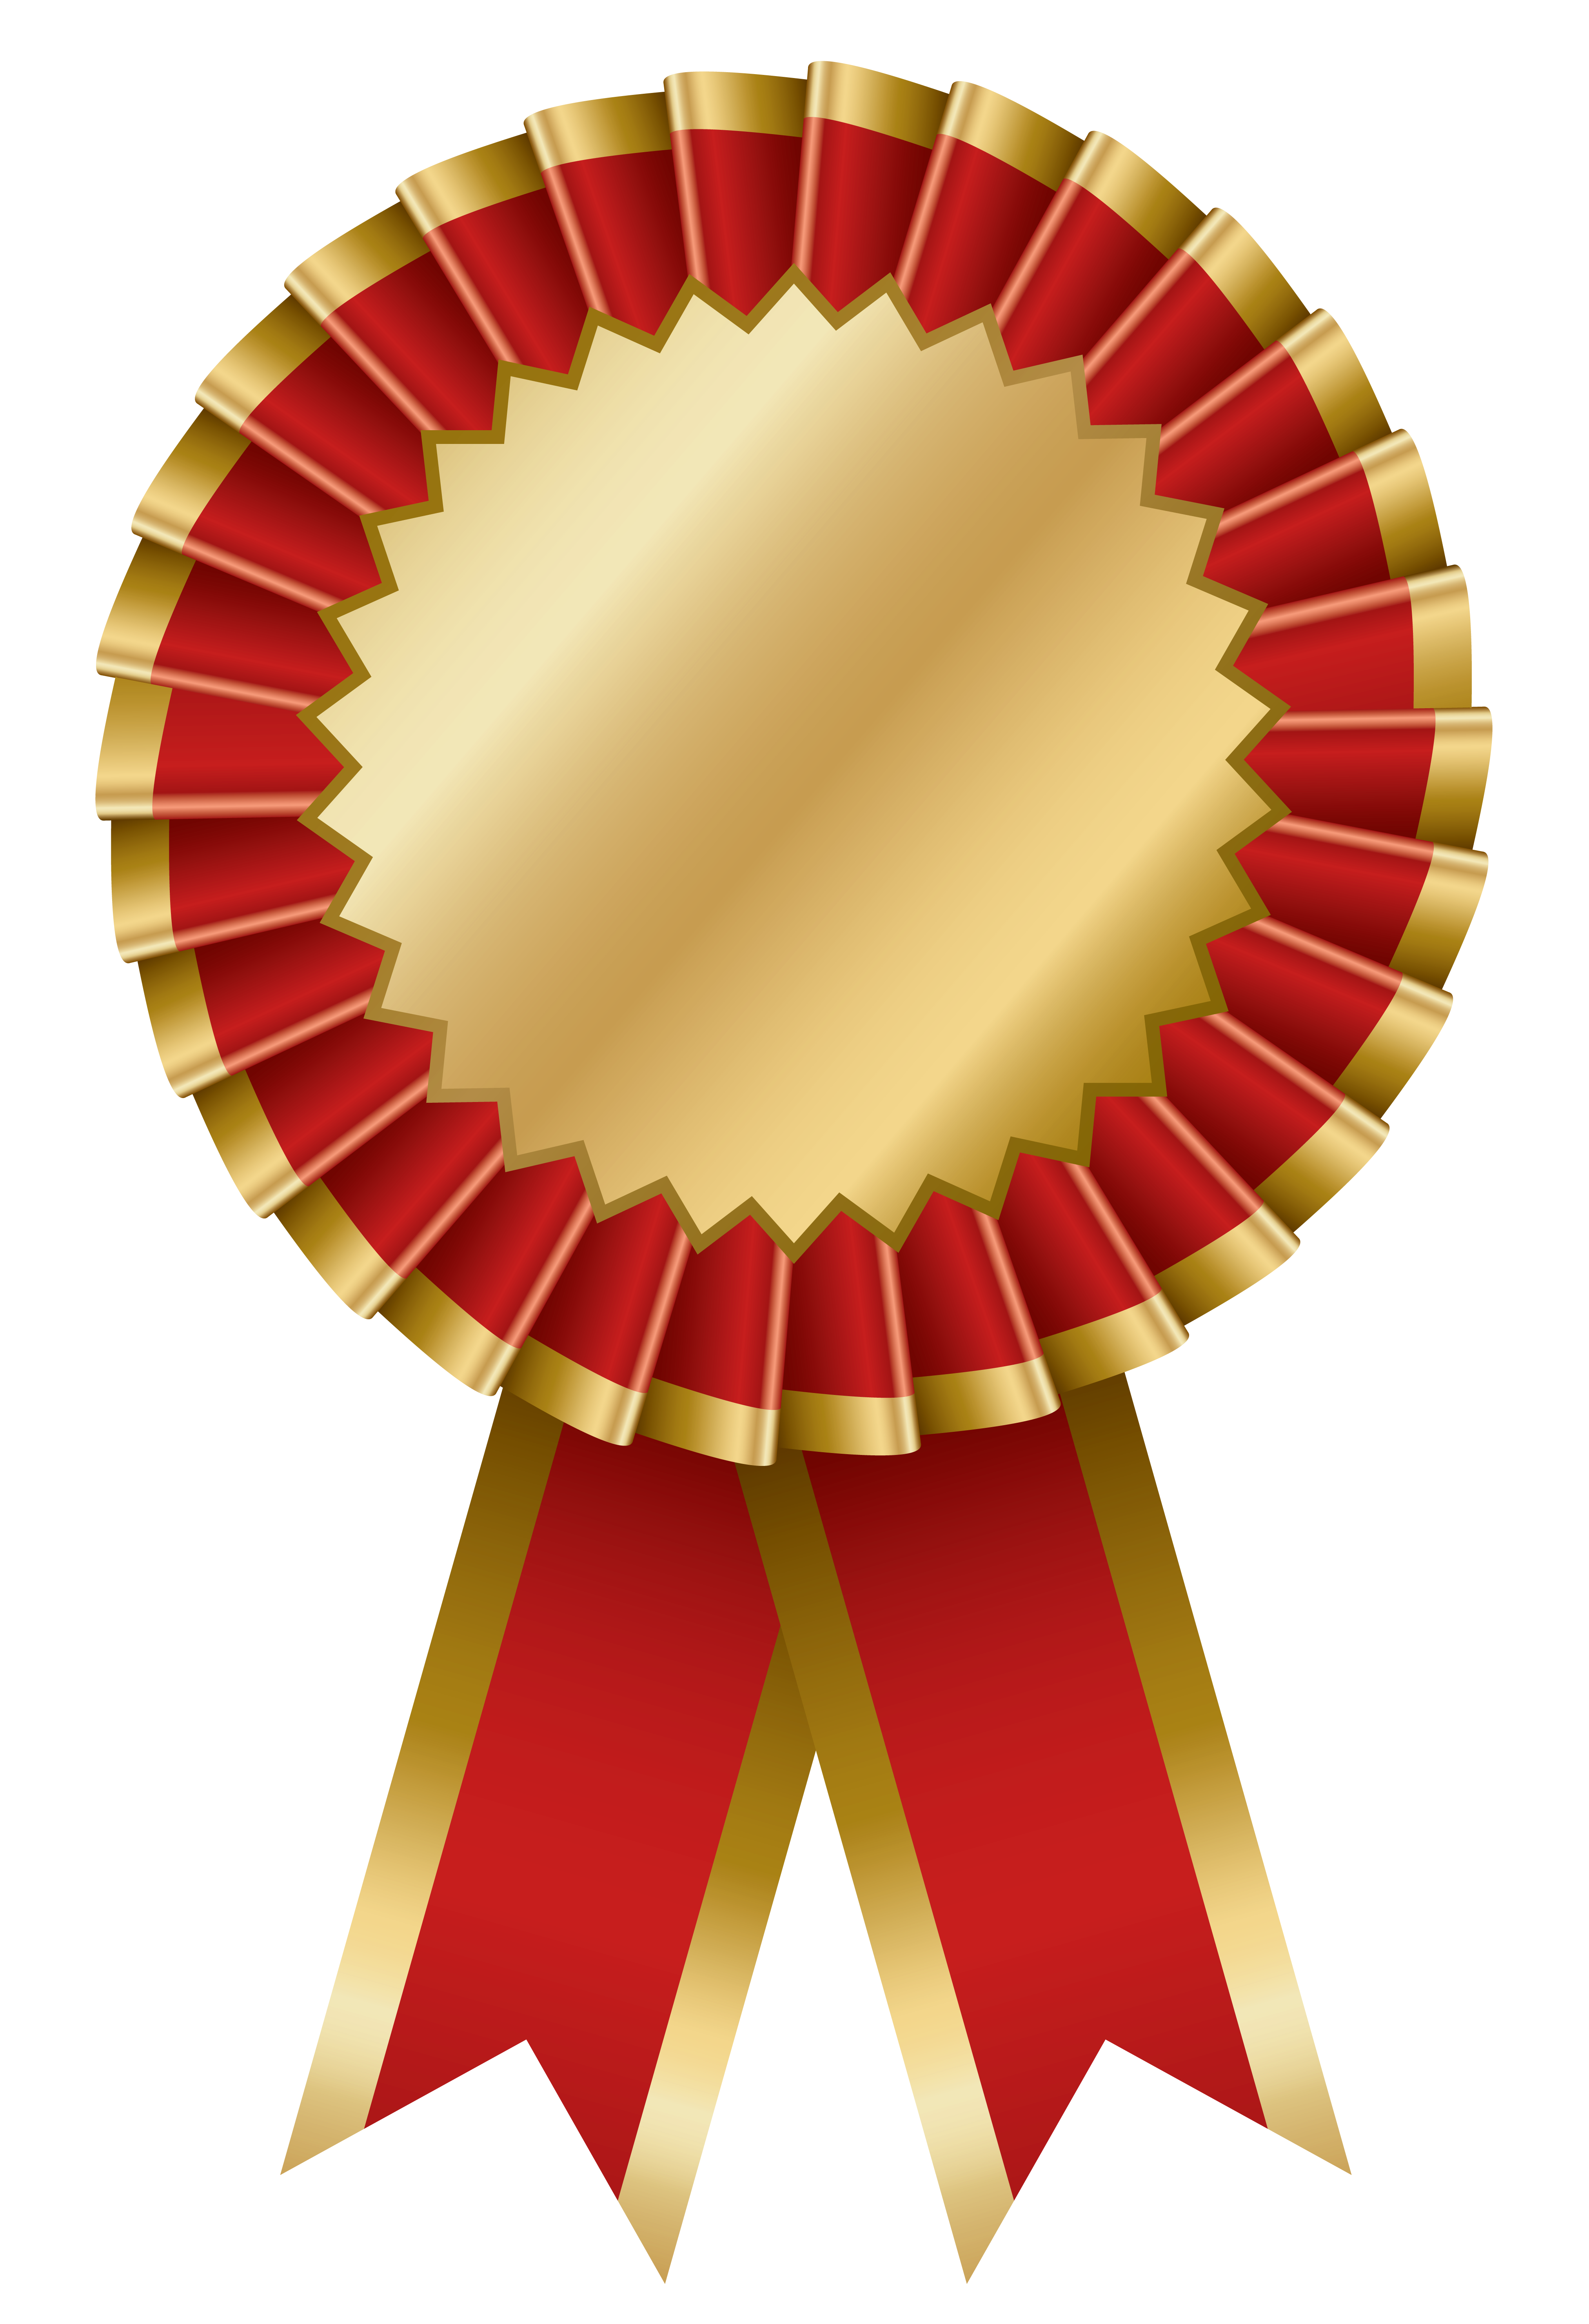 Red and Gold Transparent Rosette Ribbon PNG Clipart.